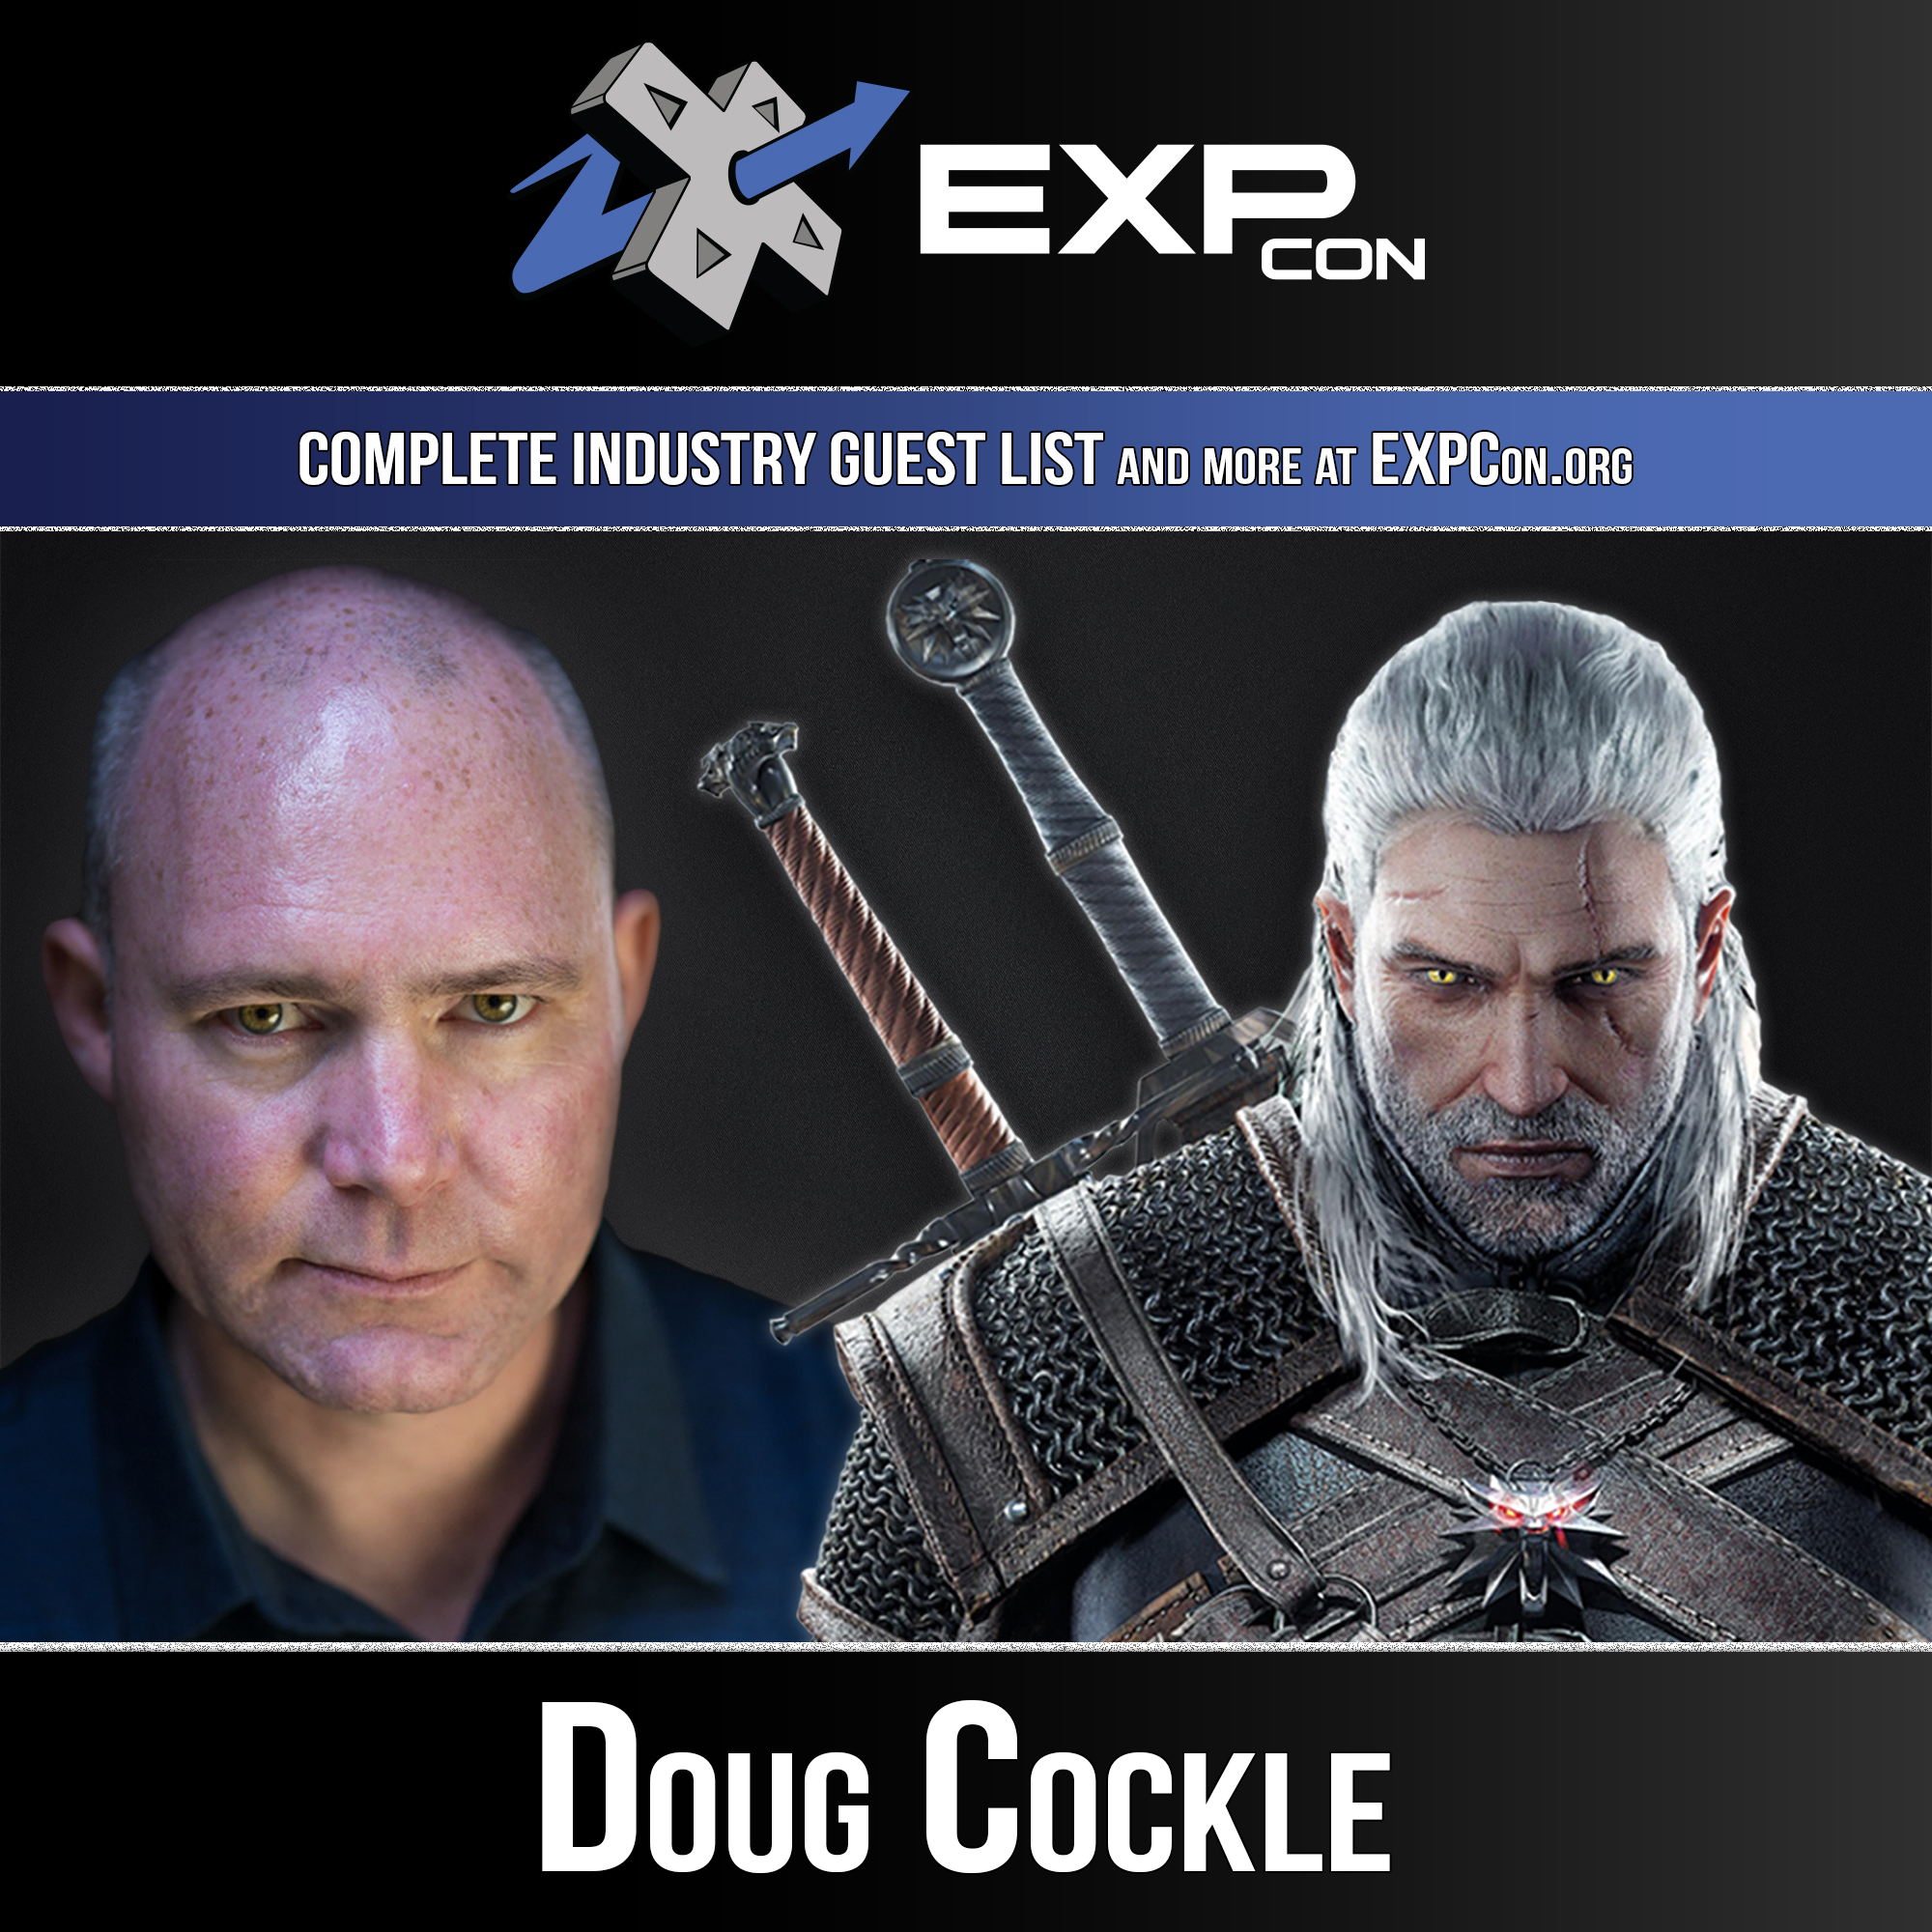 EXP Con 2019 Doug Cockle